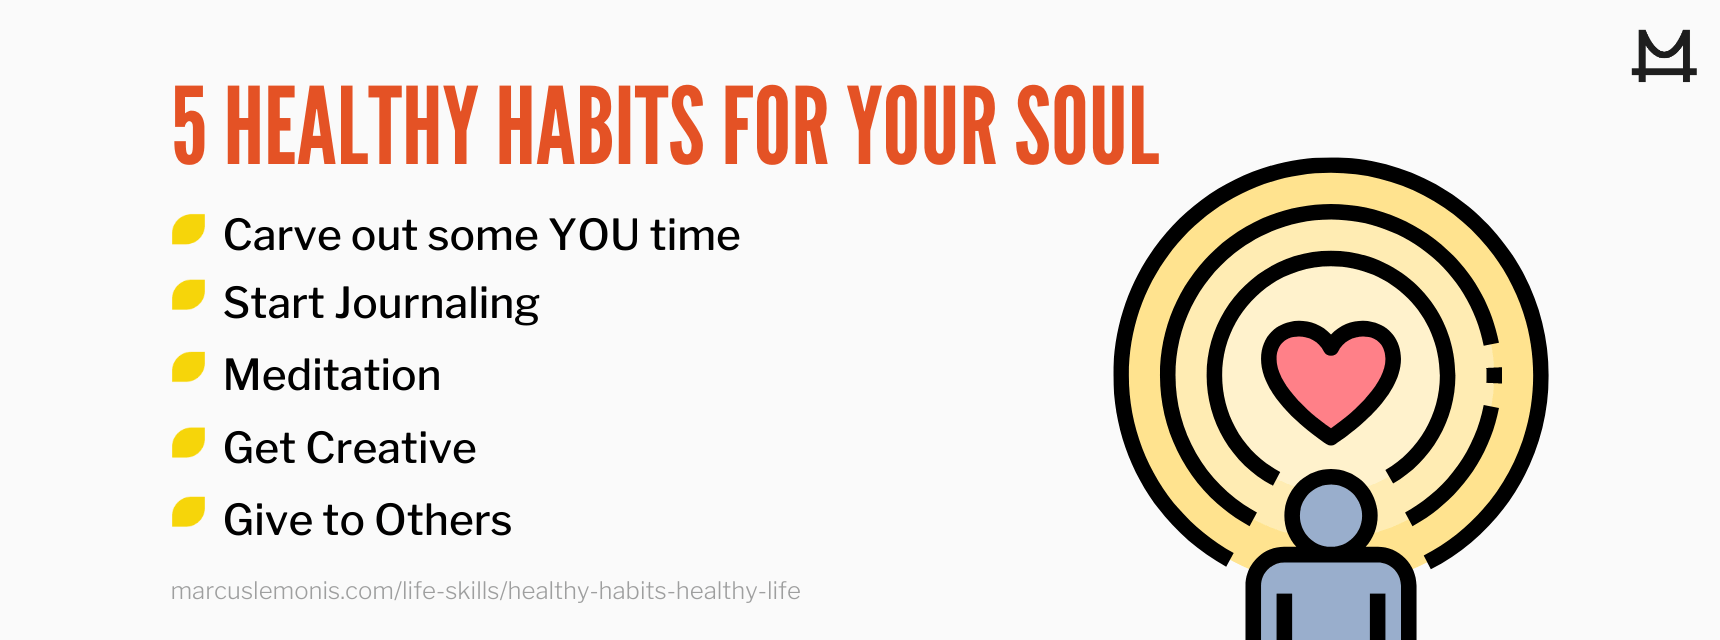 List of five healthy habits for our soul.